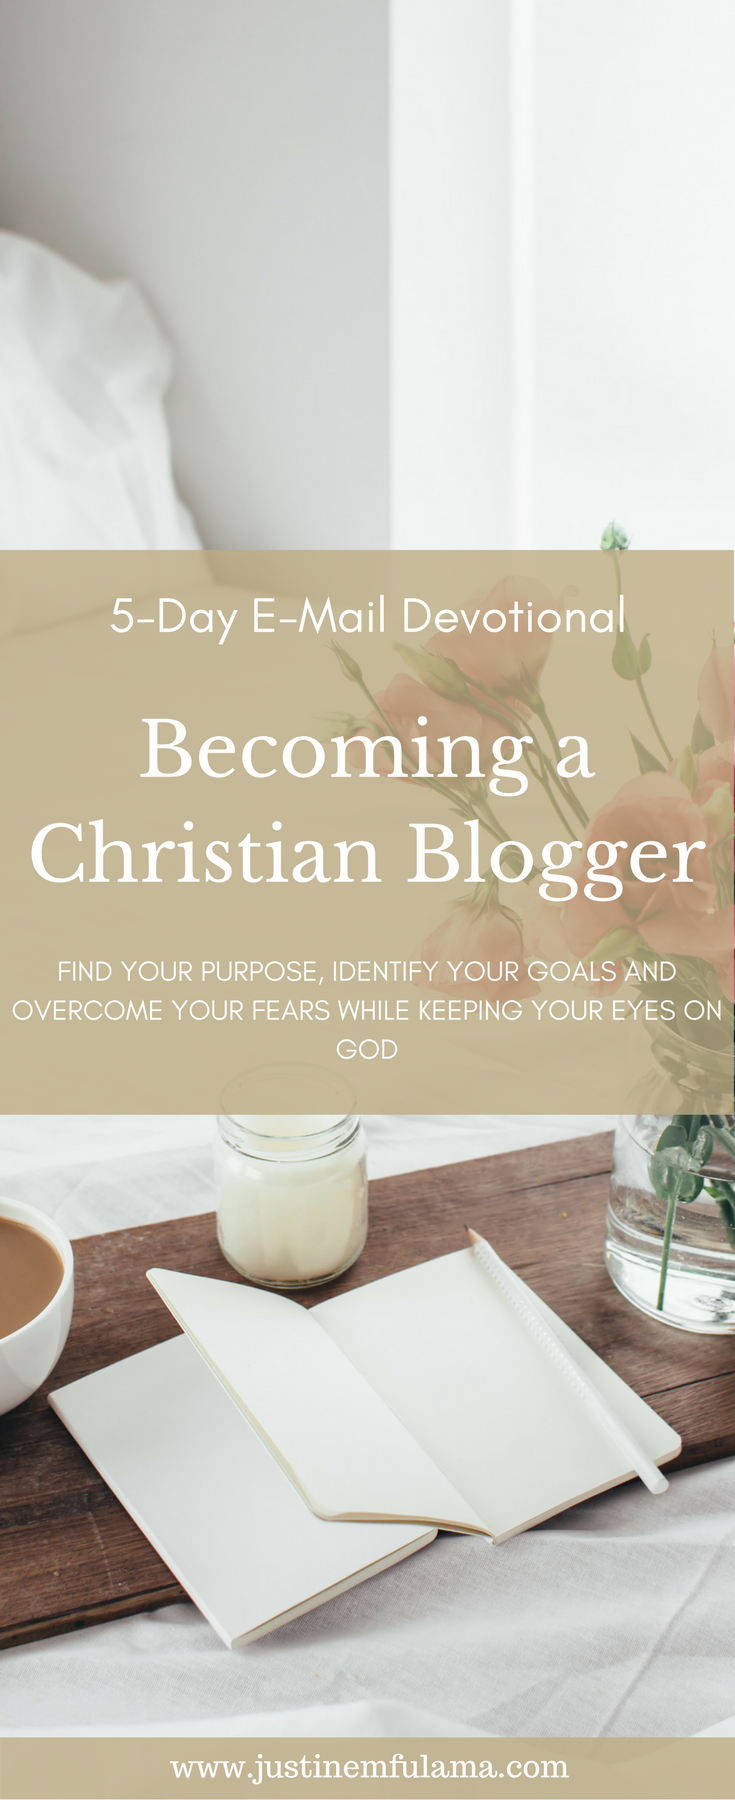 How to become a Christian Blogger_Email Devotional_blogging tips_bible study_faith blogger